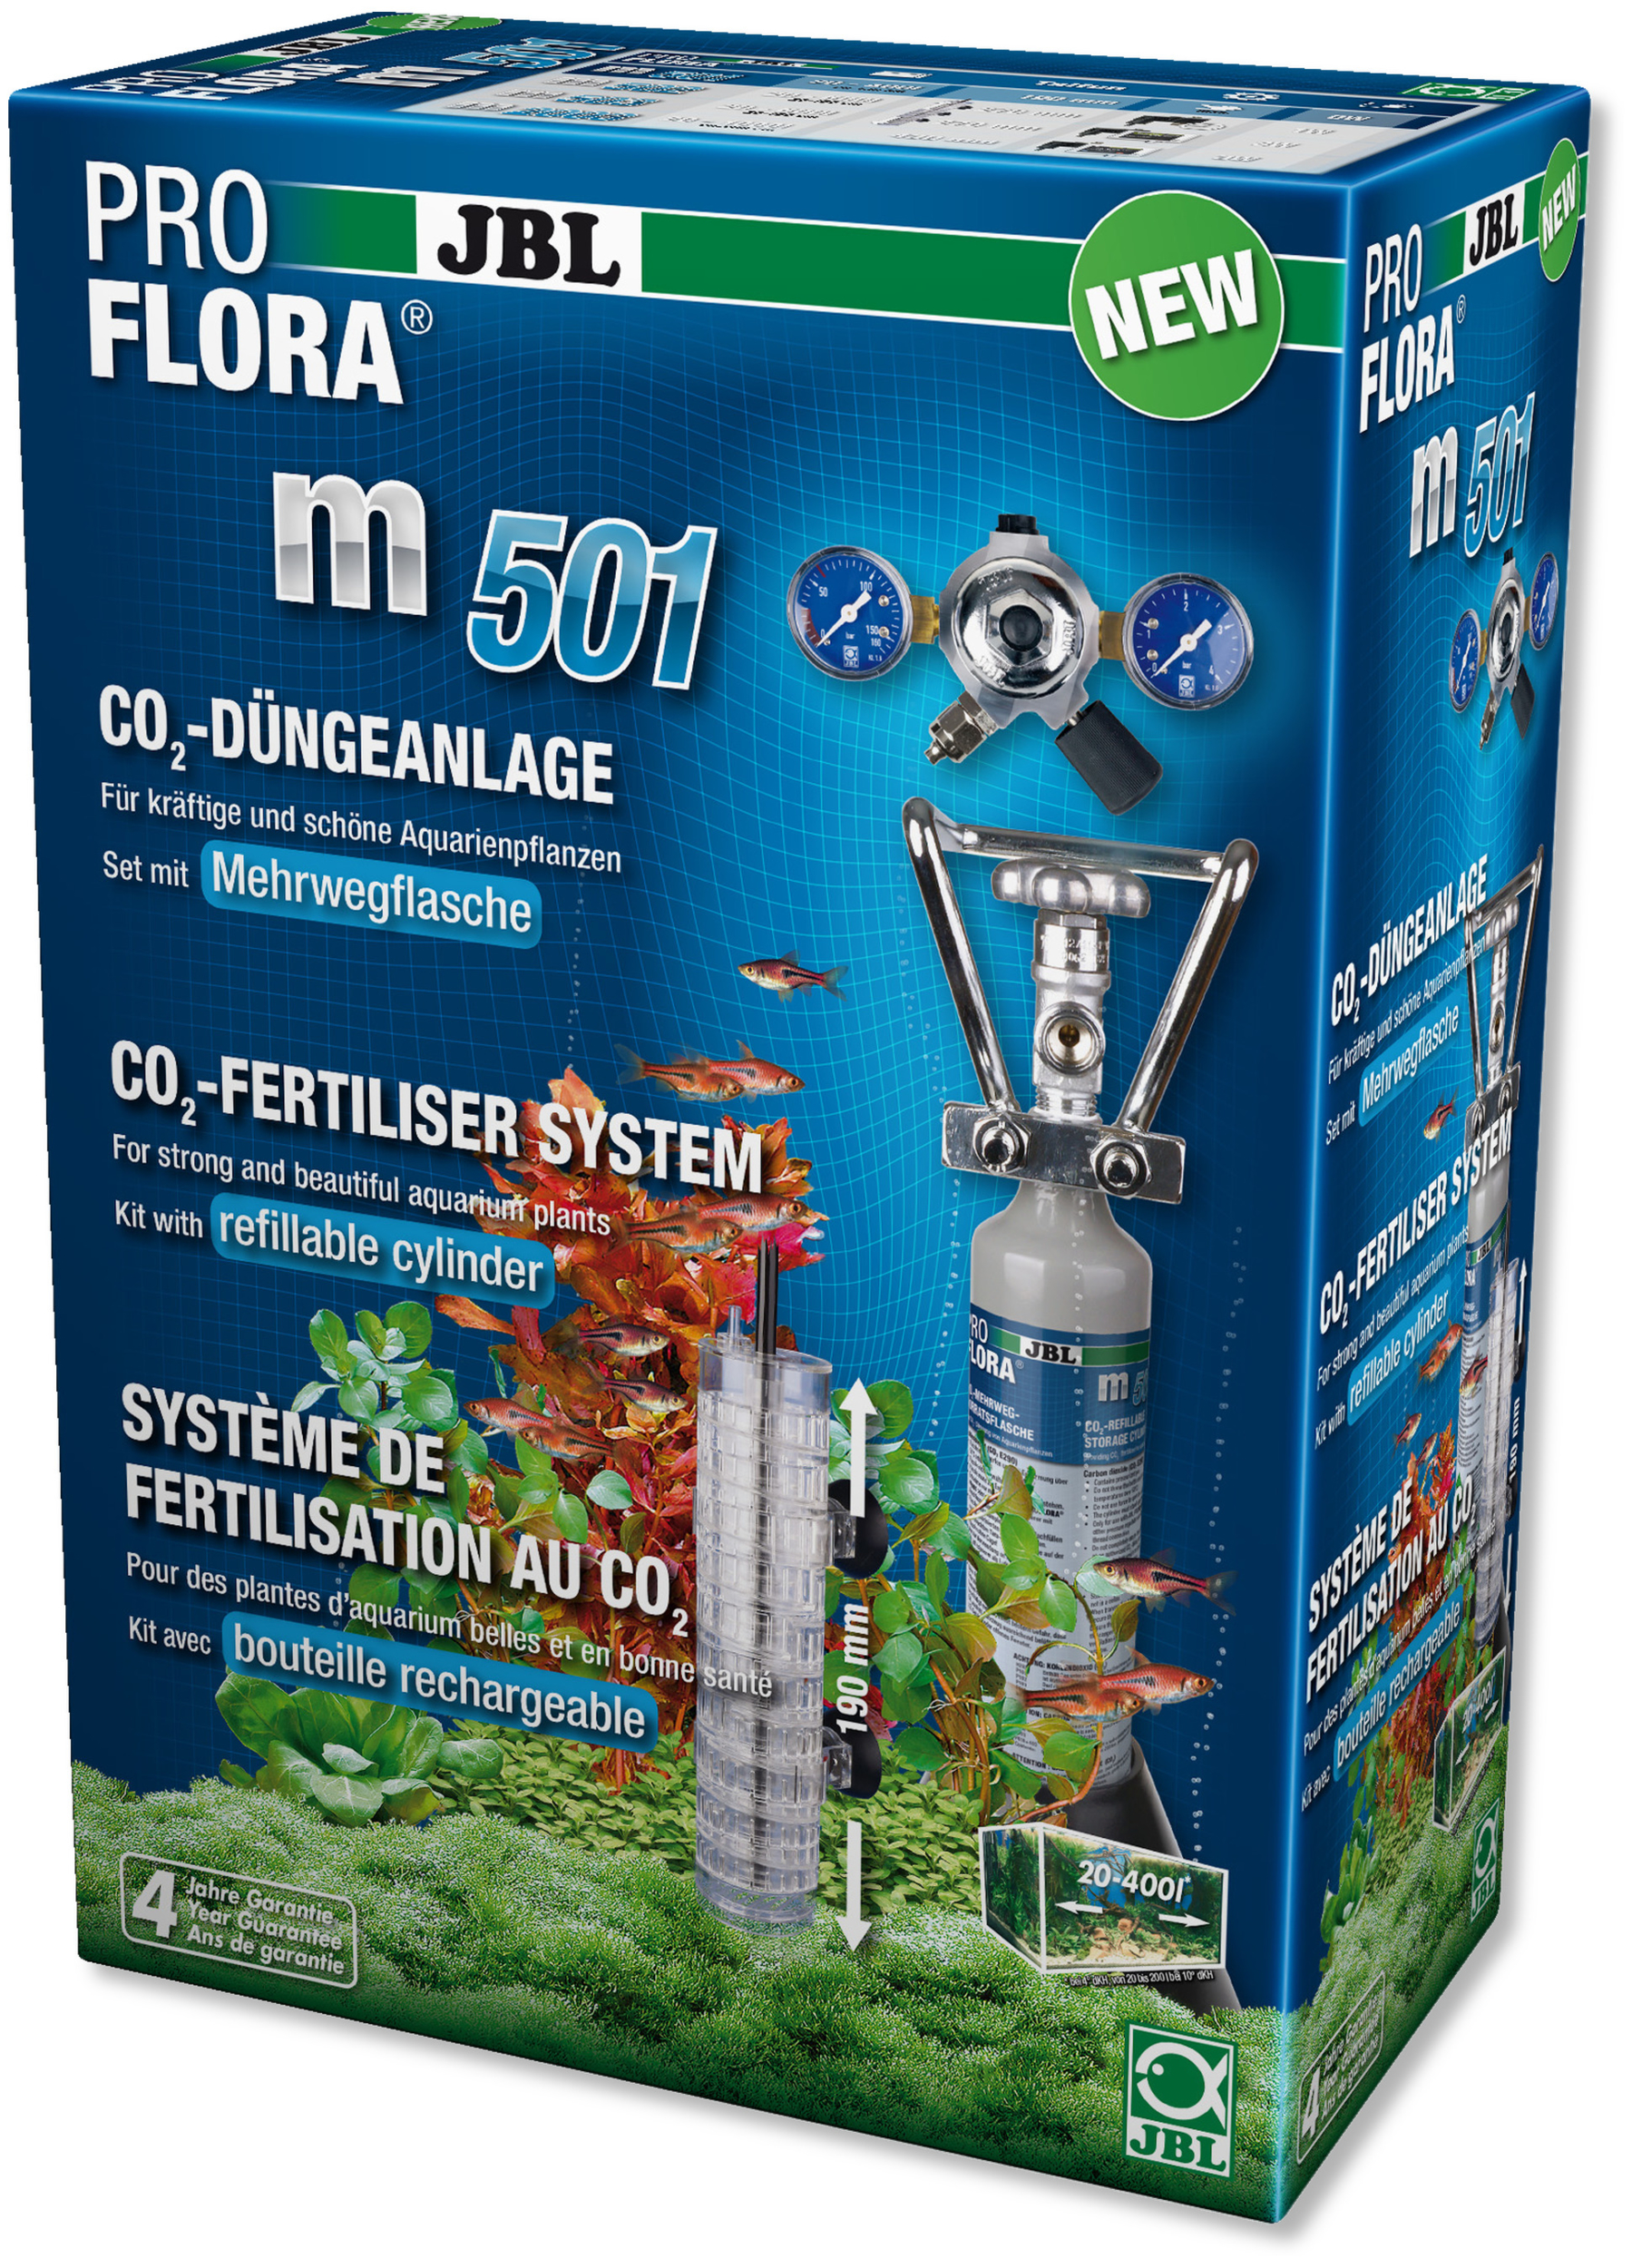 jbl-proflora-kit-co2-aquarium